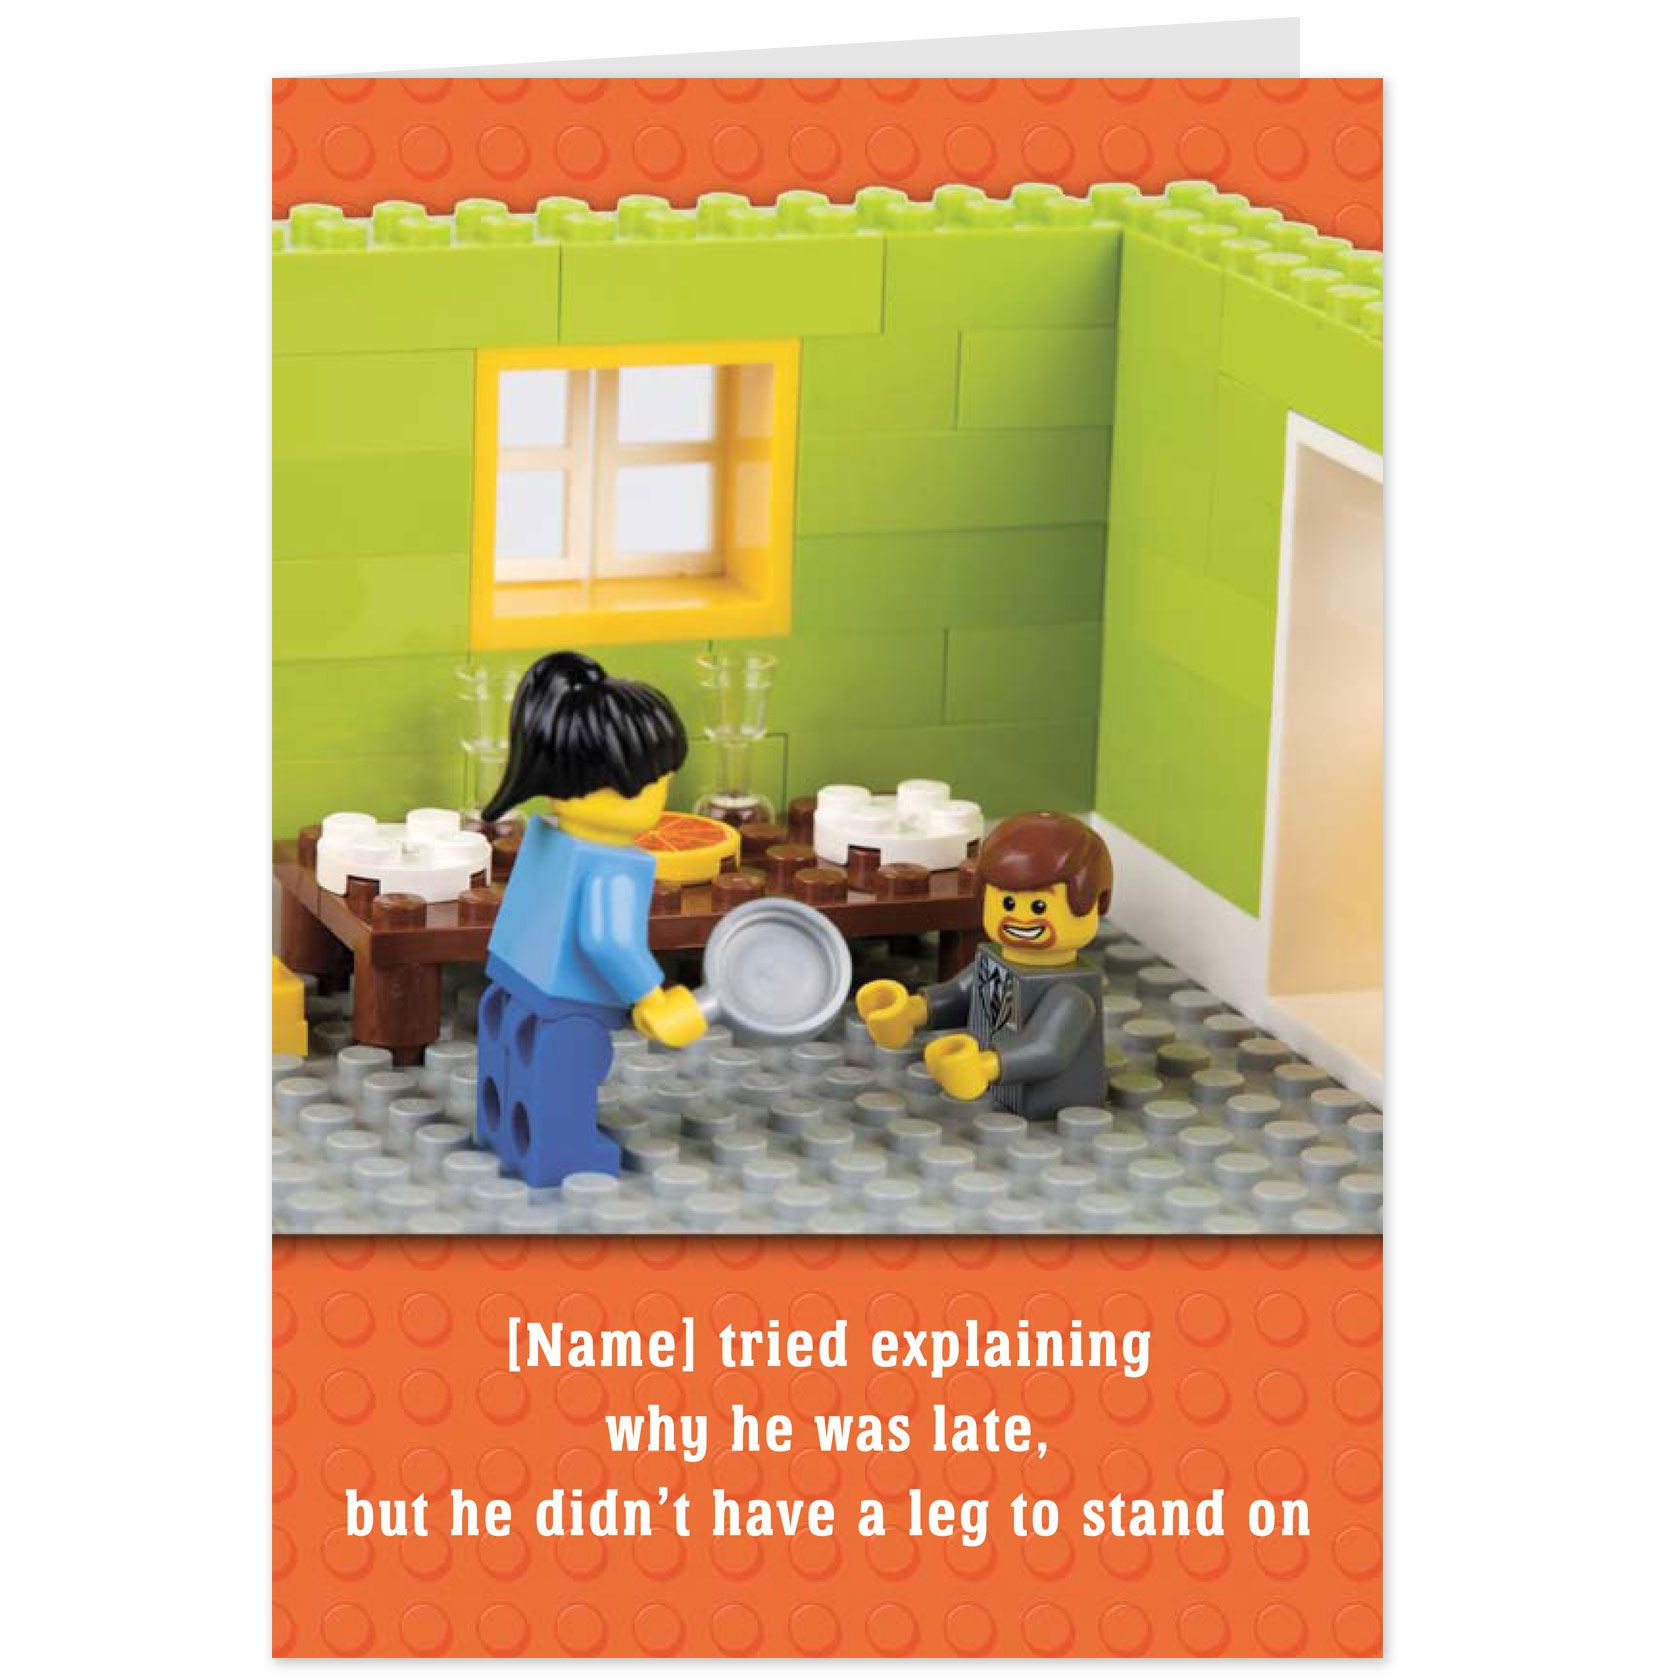 Funny Legos Lego Funny Birthday Card With Kitchen Fight Scene Personalised Funny Birthday Cards Birthday Cards Legos